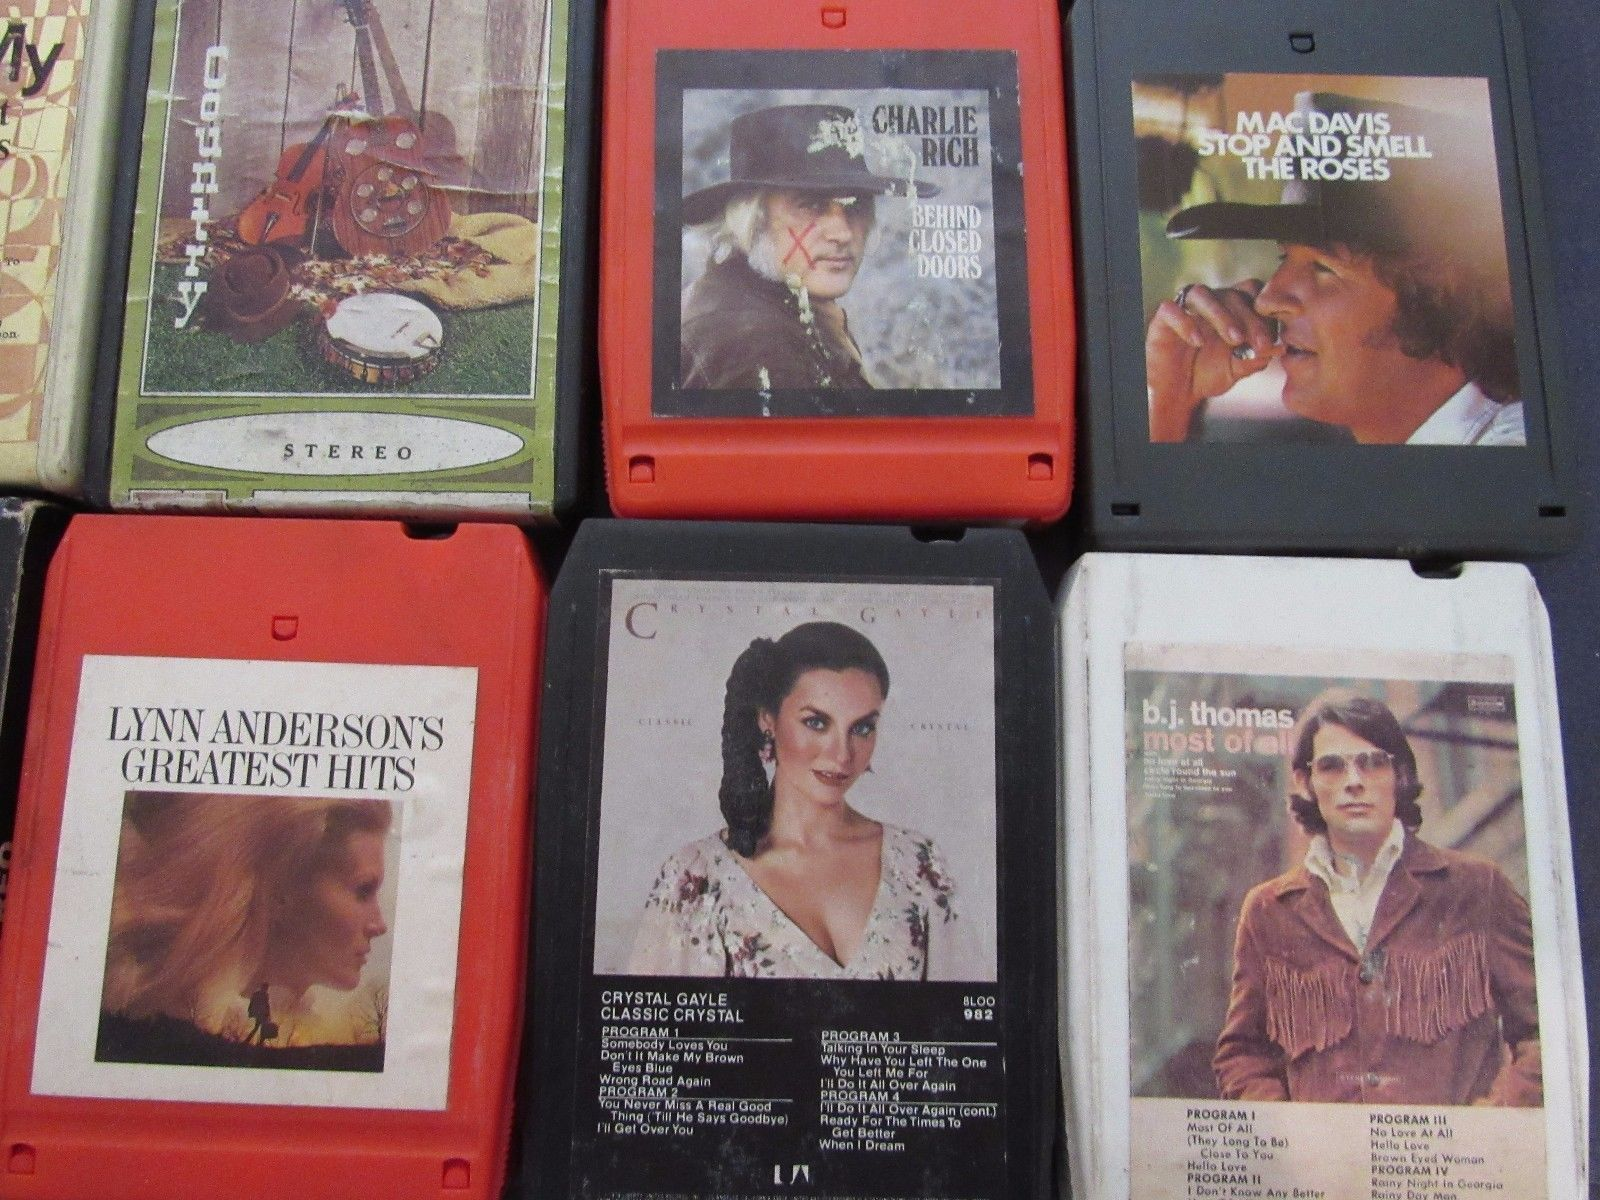 8-Track Lot 30 Country Pride Elvis Tucker Tubb Rich Whittaker Statler Brothers